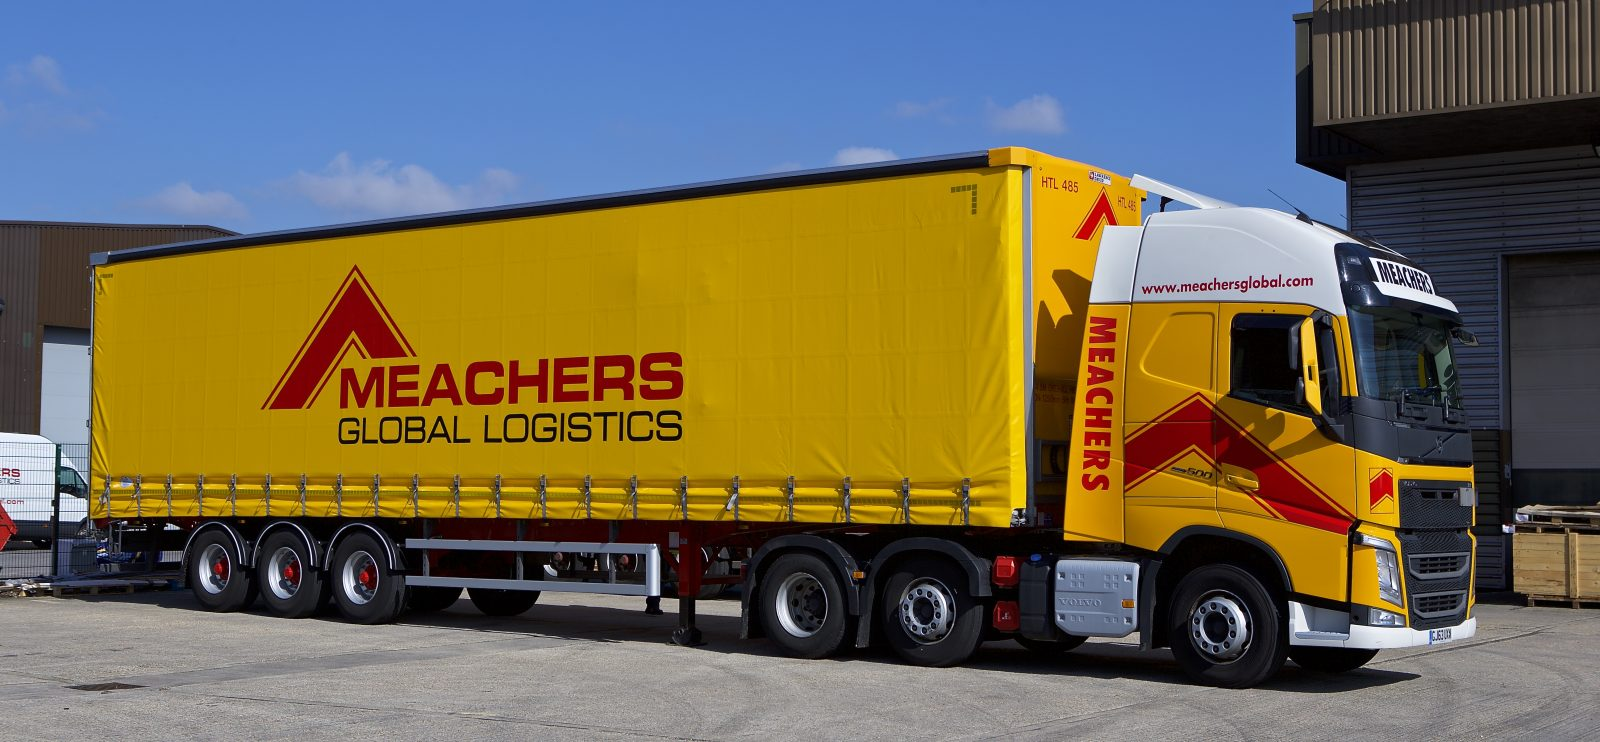 Meachers Global Logistics Transport Warehousing Lorry